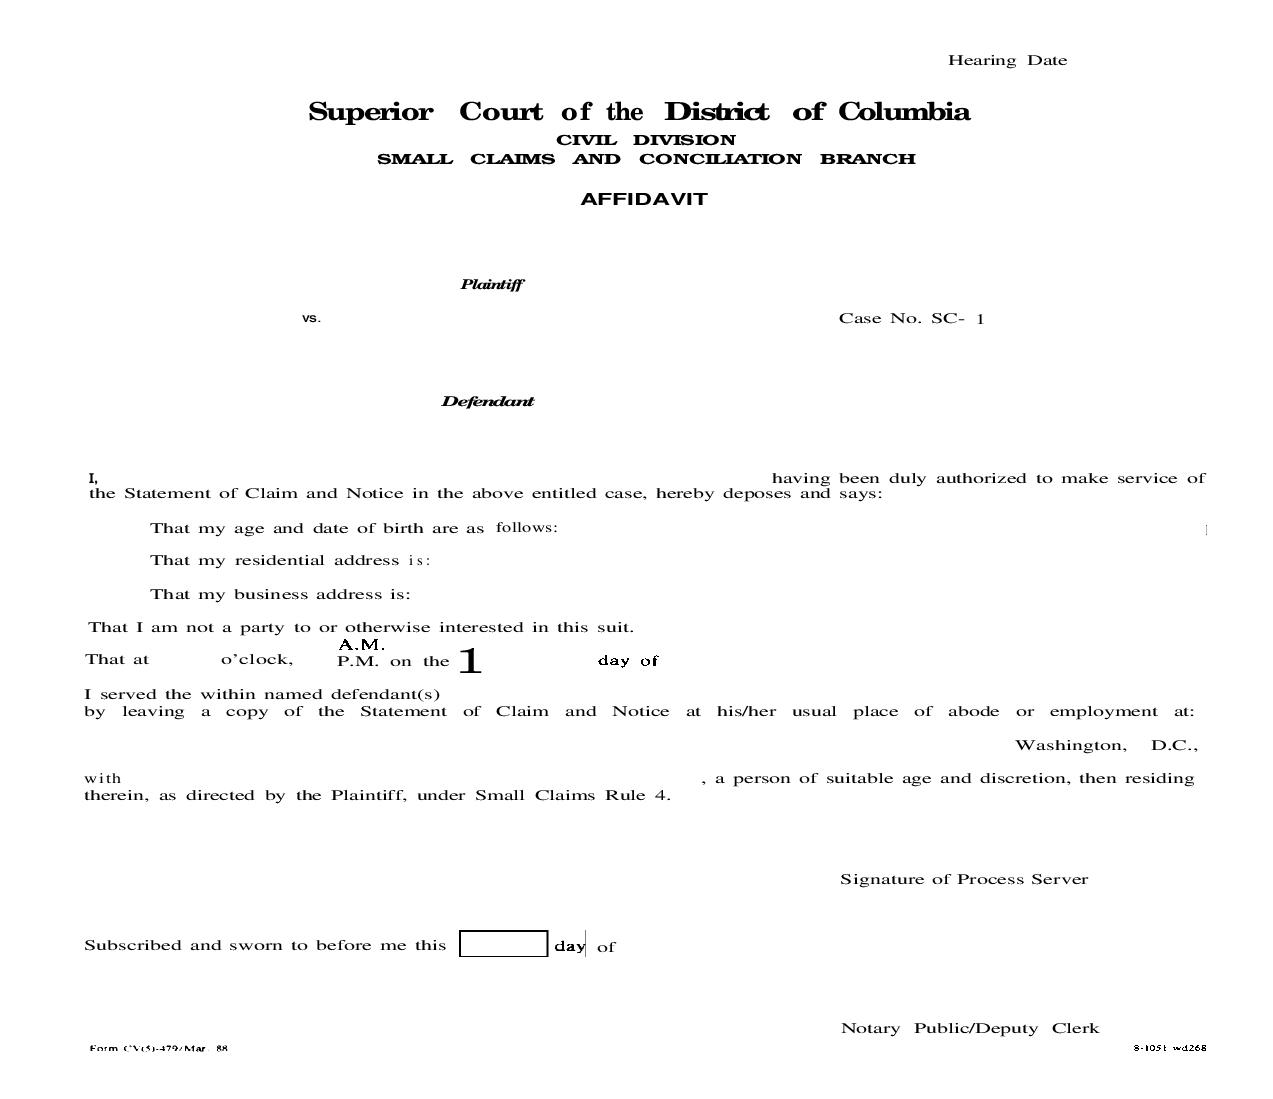 Affidavit (Of Service Of Statement Of Claim And Notice) {CV(5)-479} | Pdf Fpdf Doc Docx | District Of Columbia